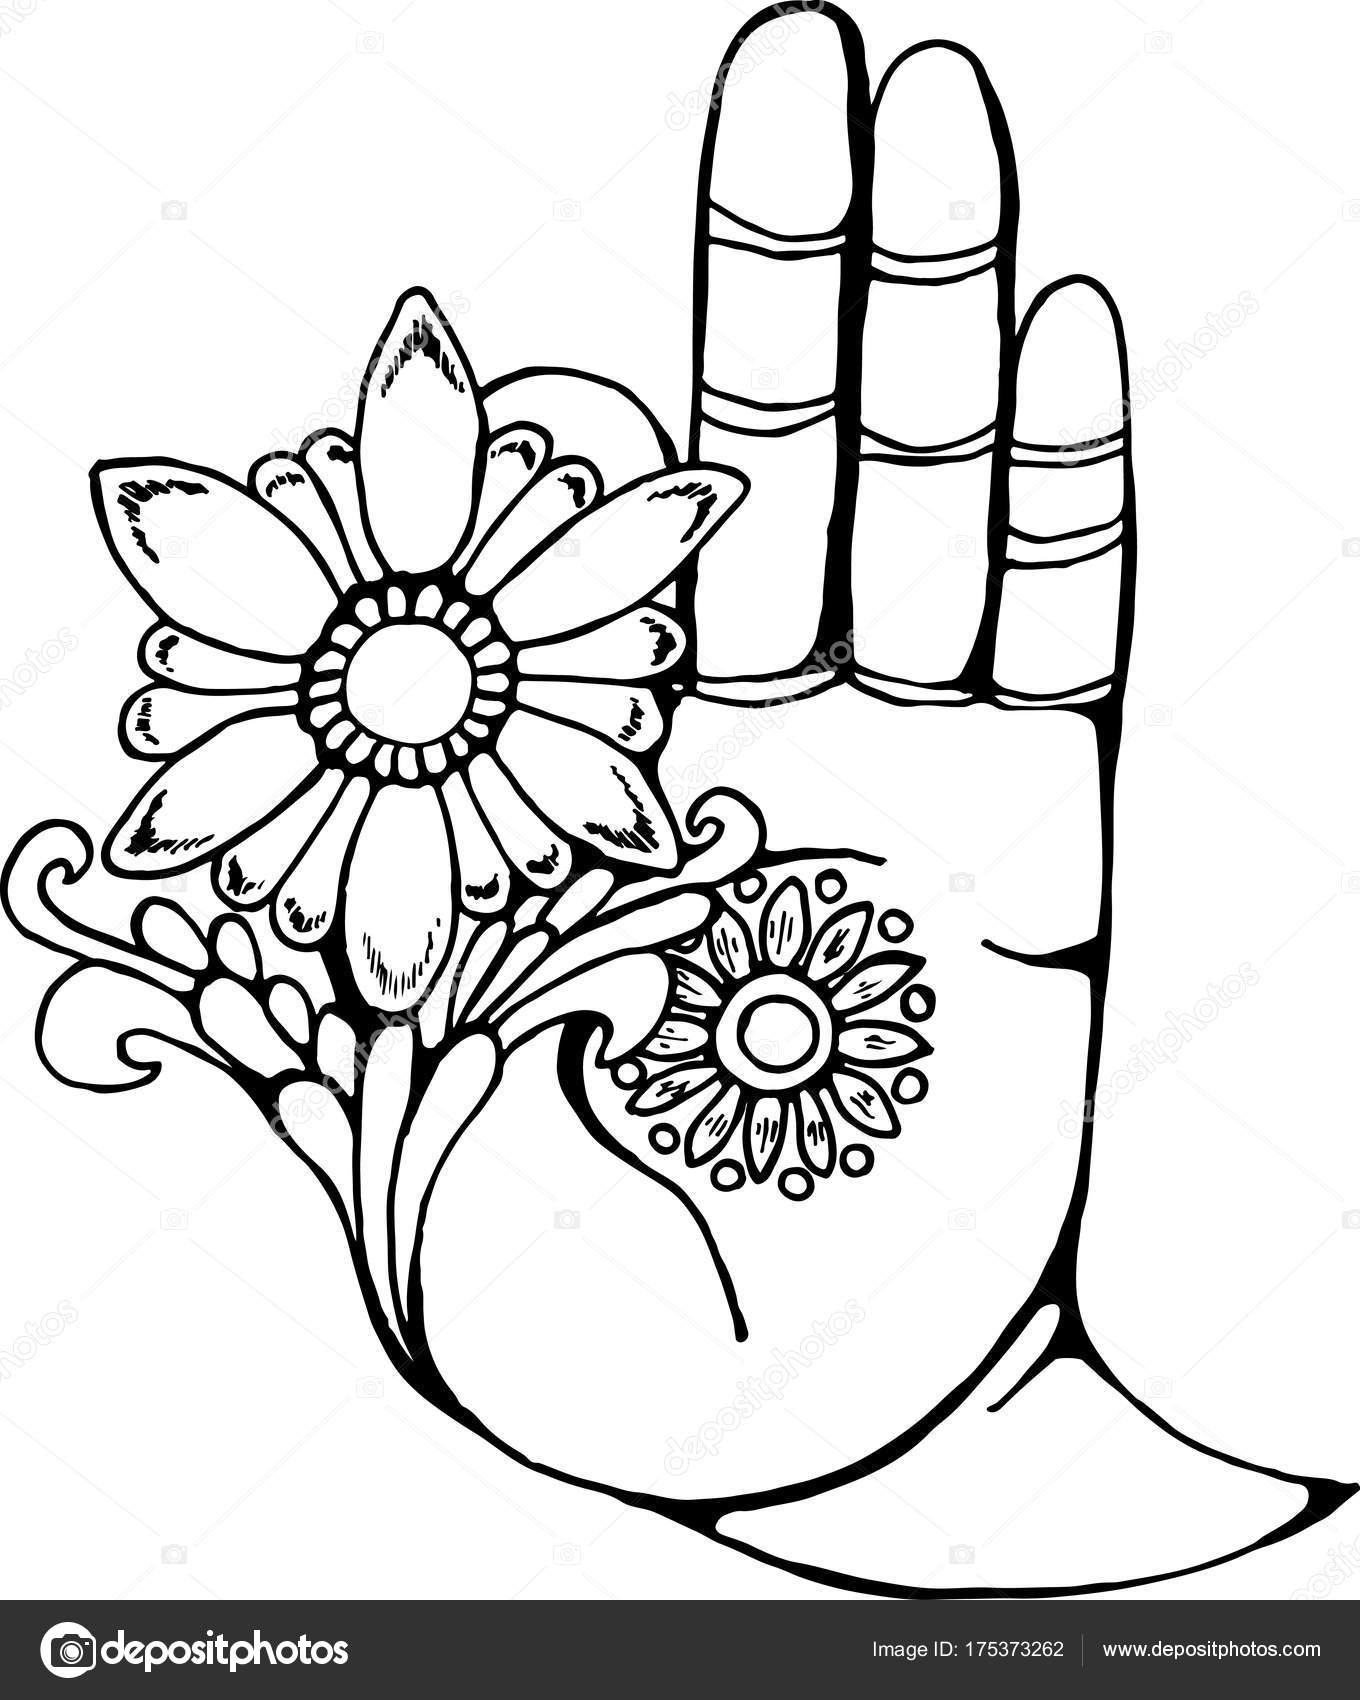 1360x1700 Illustration Of A Buddha Hand Holding A Flower. Black And White